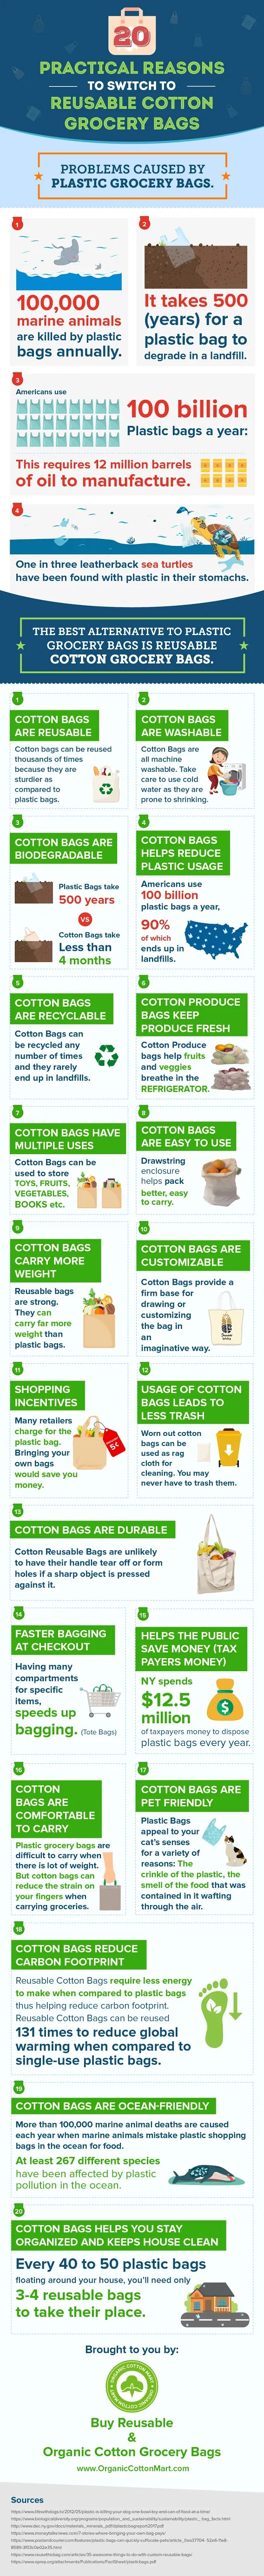 20 Practical Reasons To Switch To Reusable Grocery #infographic